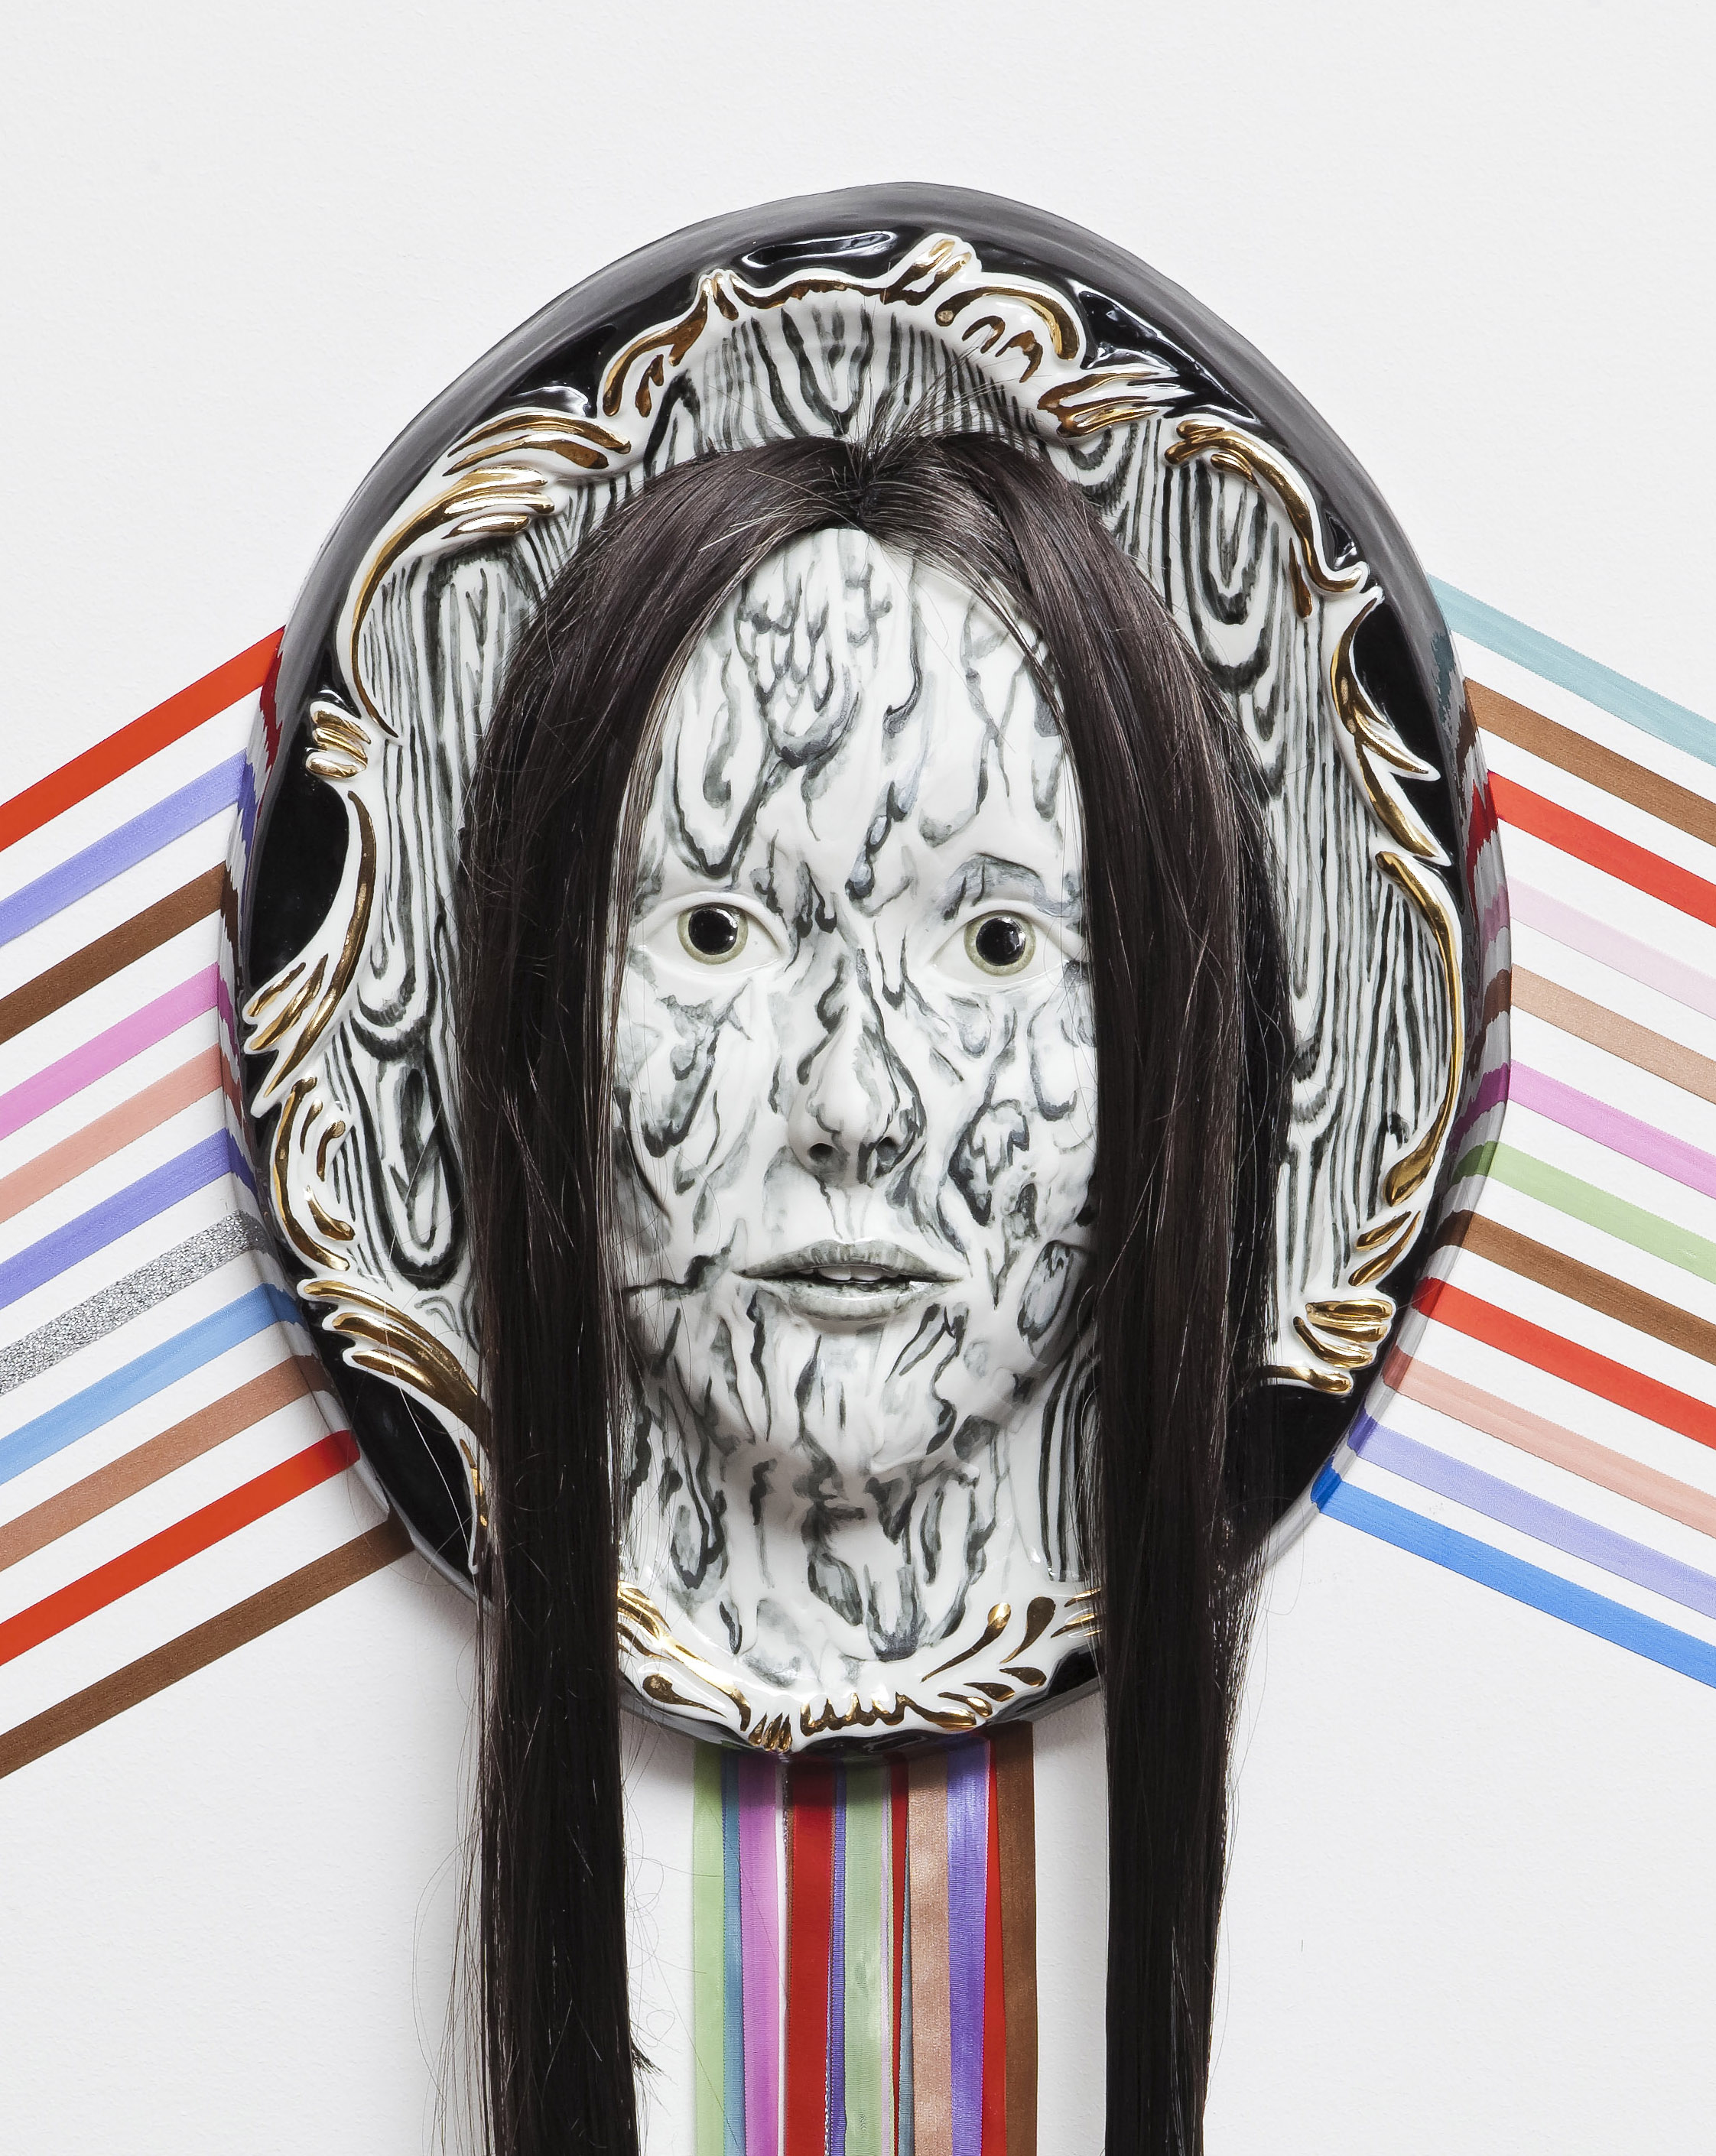 Shary Boyle, Canadian Artist, 2012 (detail), plaster, goldleaf, ribbon, porcelain, hair Commissioned for the BMO Project Room, Toronto. Photo: Toni Hafkenscheid Courtesy the artist and Jessica Bradley Inc.